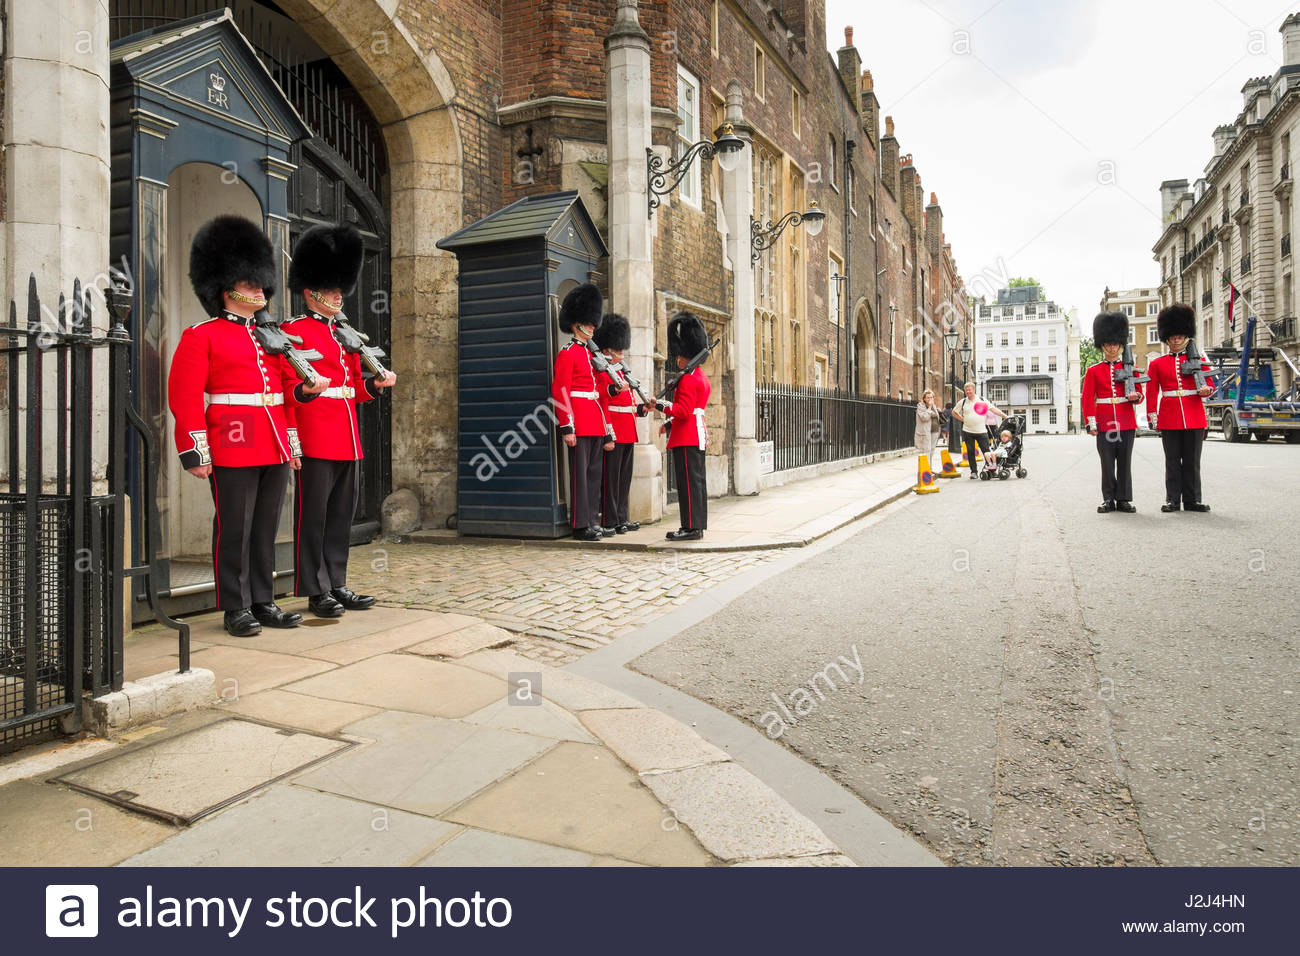 Grenadier Guards standing at attention holding L85A1 IW bullpup rifles, St James's Palace, Cleveland Row, City of - Stock Image